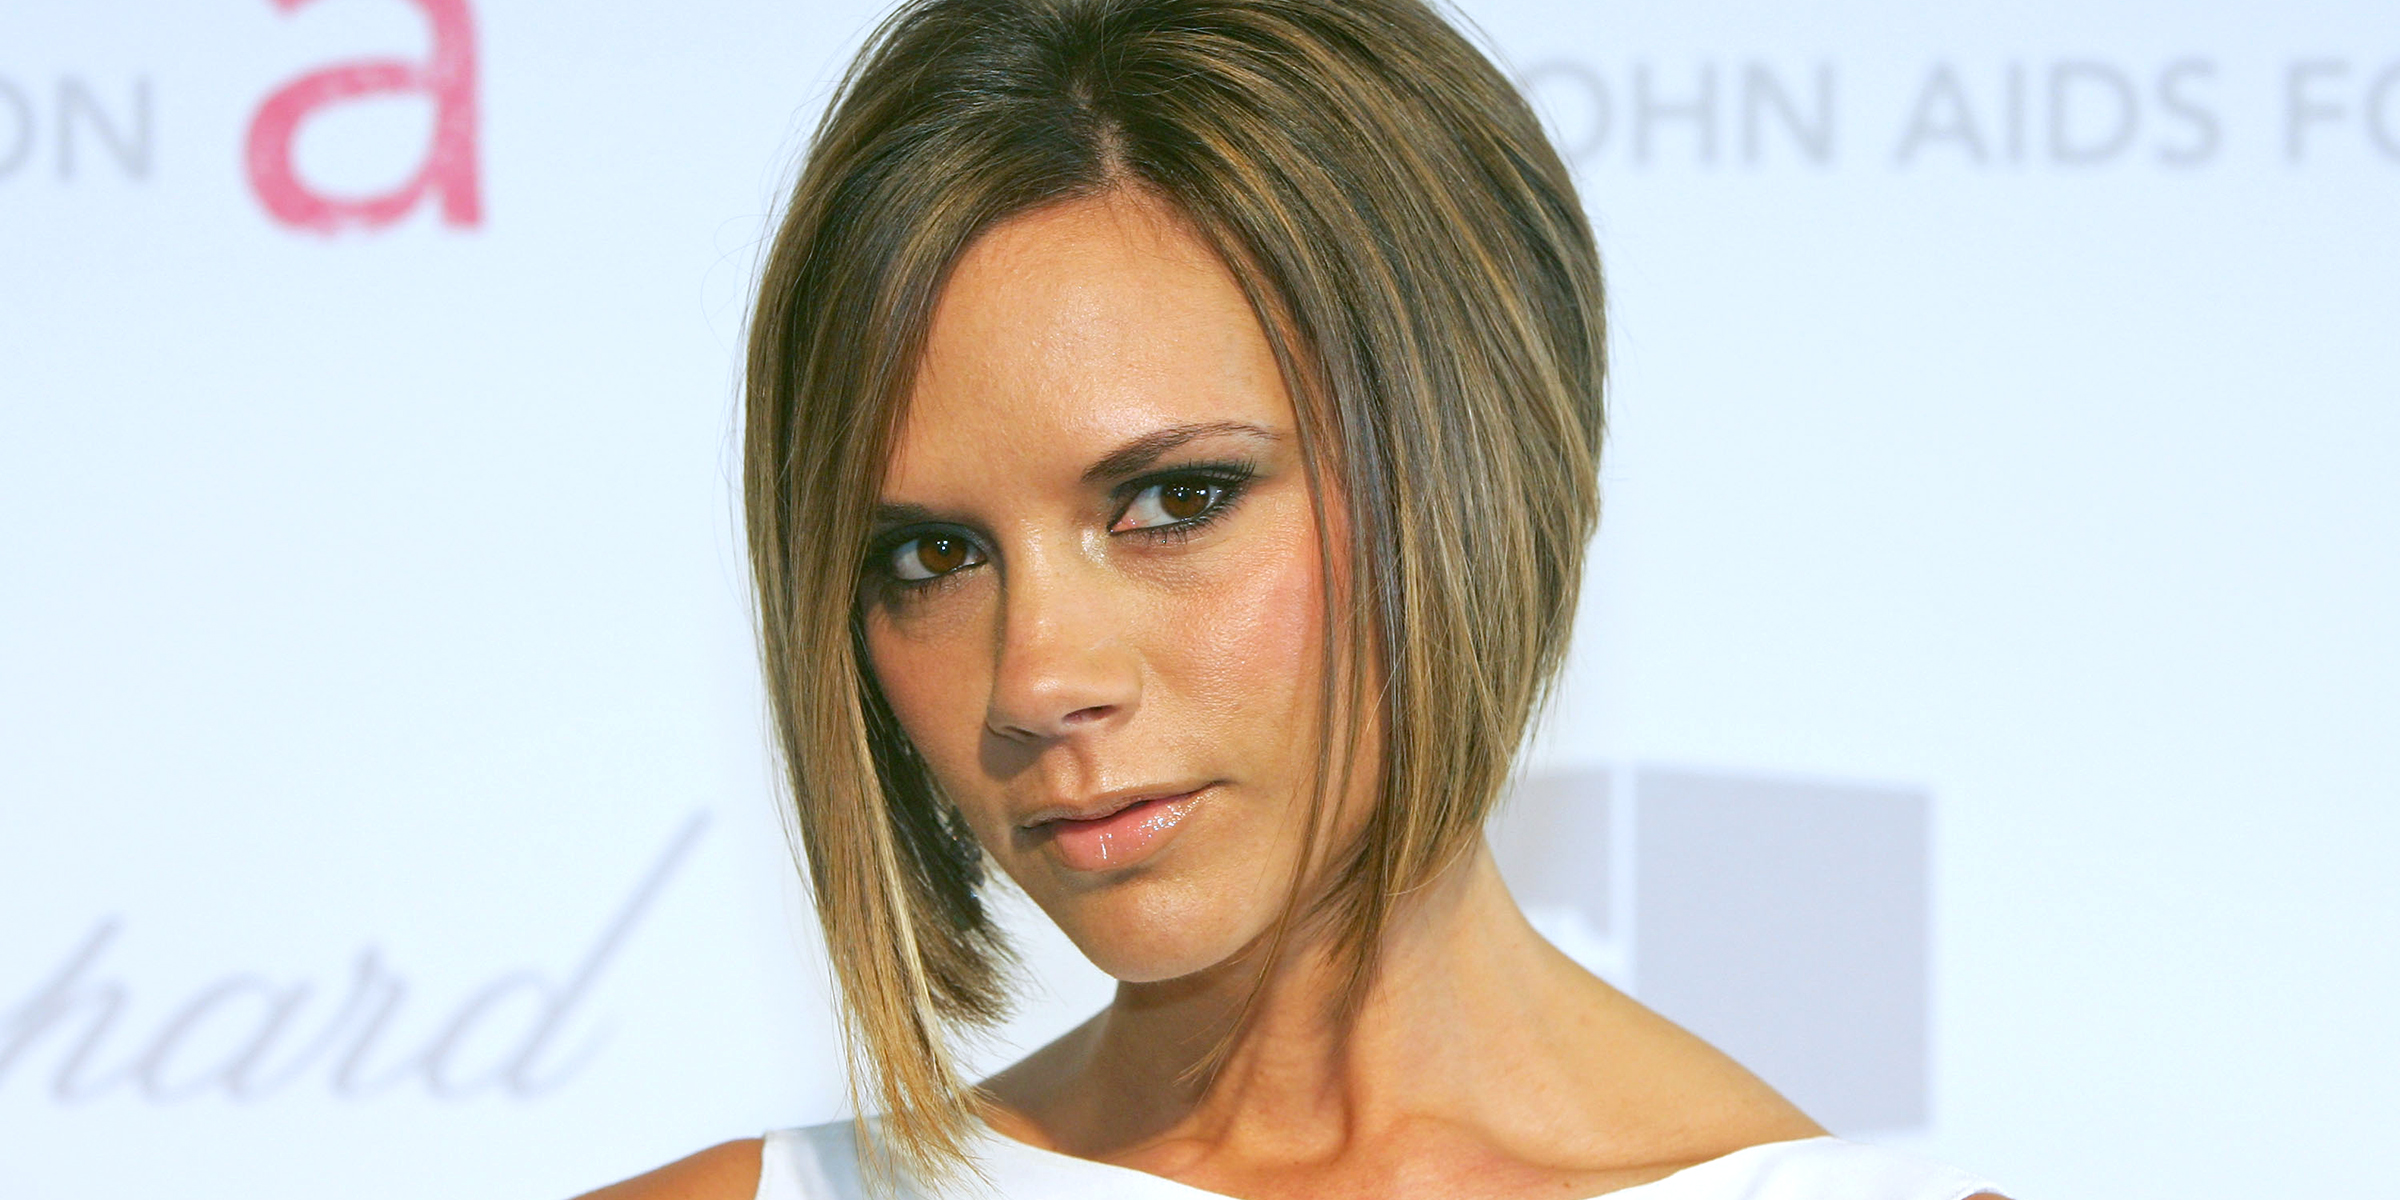 Victoria Beckham s daughter, Harper, just copied her mom s famous bob 1380670690